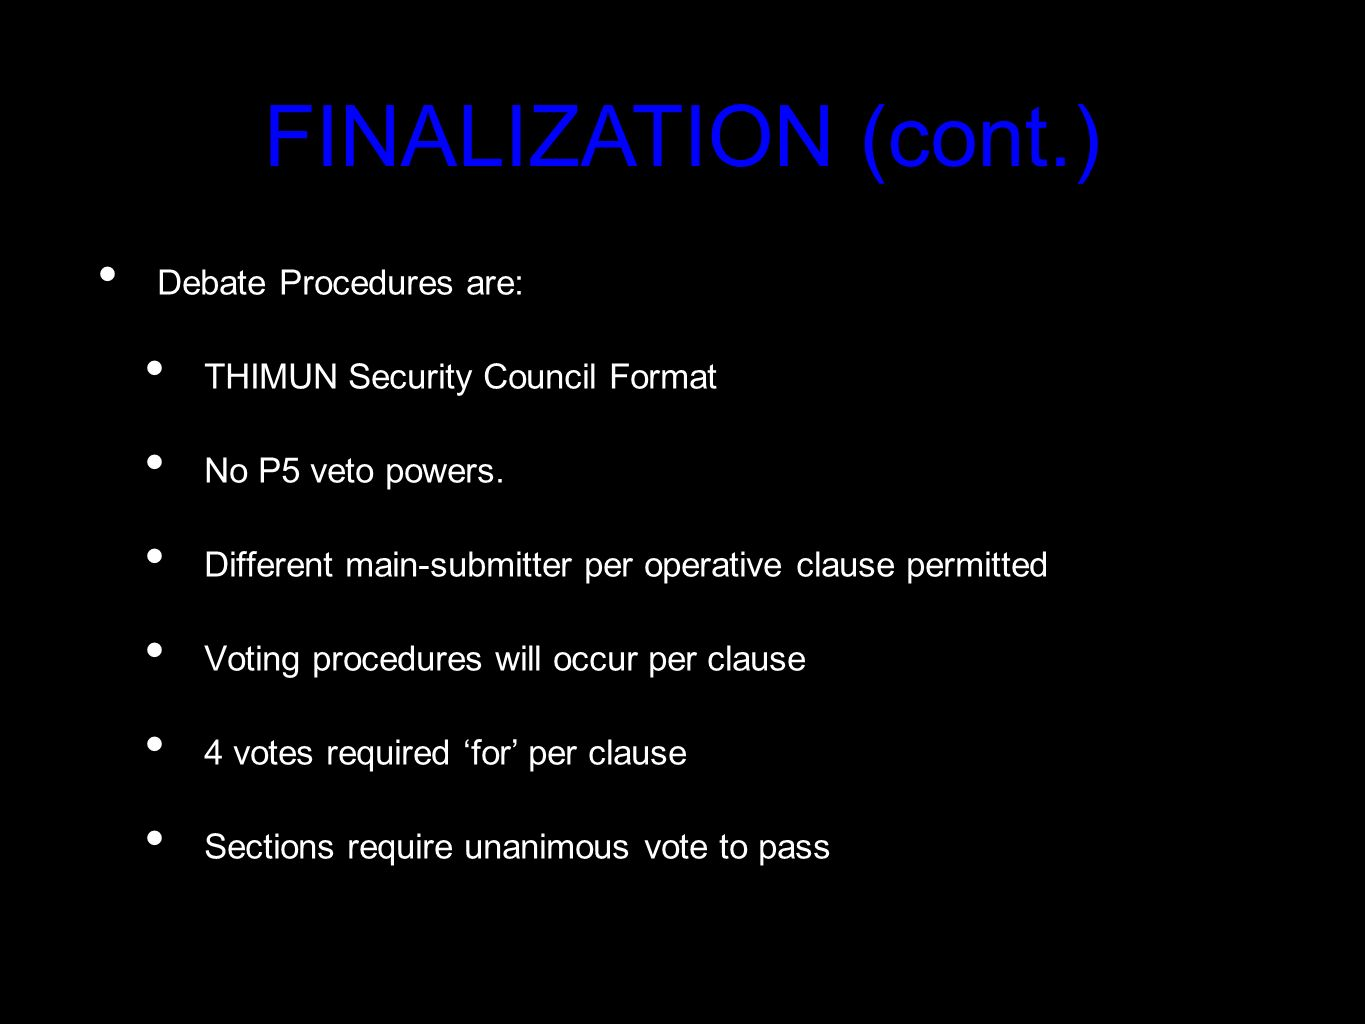 Debate Procedures are: THIMUN Security Council Format No P5 veto powers. Different main-submitter per operative clause permitted Voting procedures wil